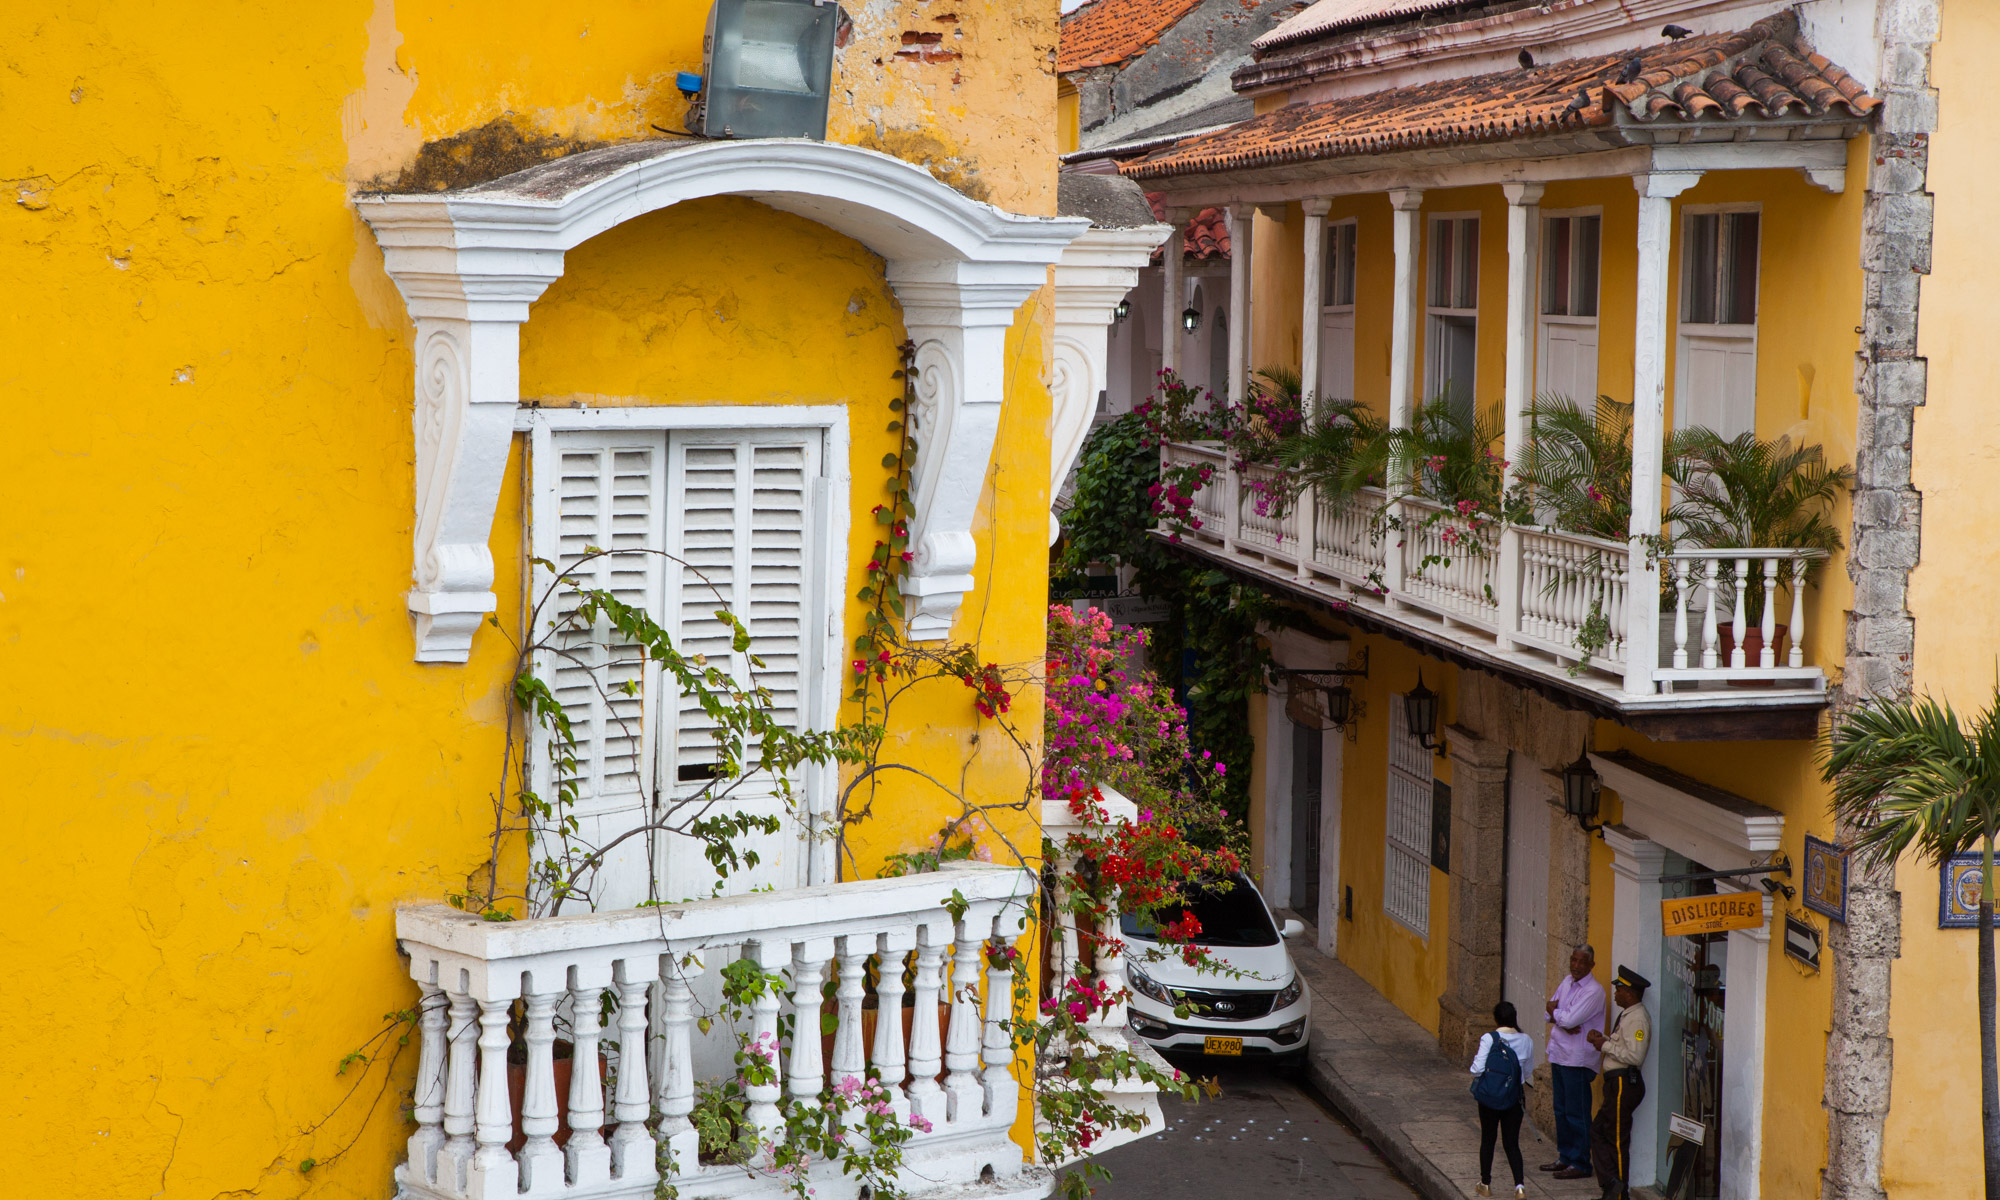 street corner with historical yellow buildings and white terraces with red and pink flowers in the historic centre of Cartagena Colombia